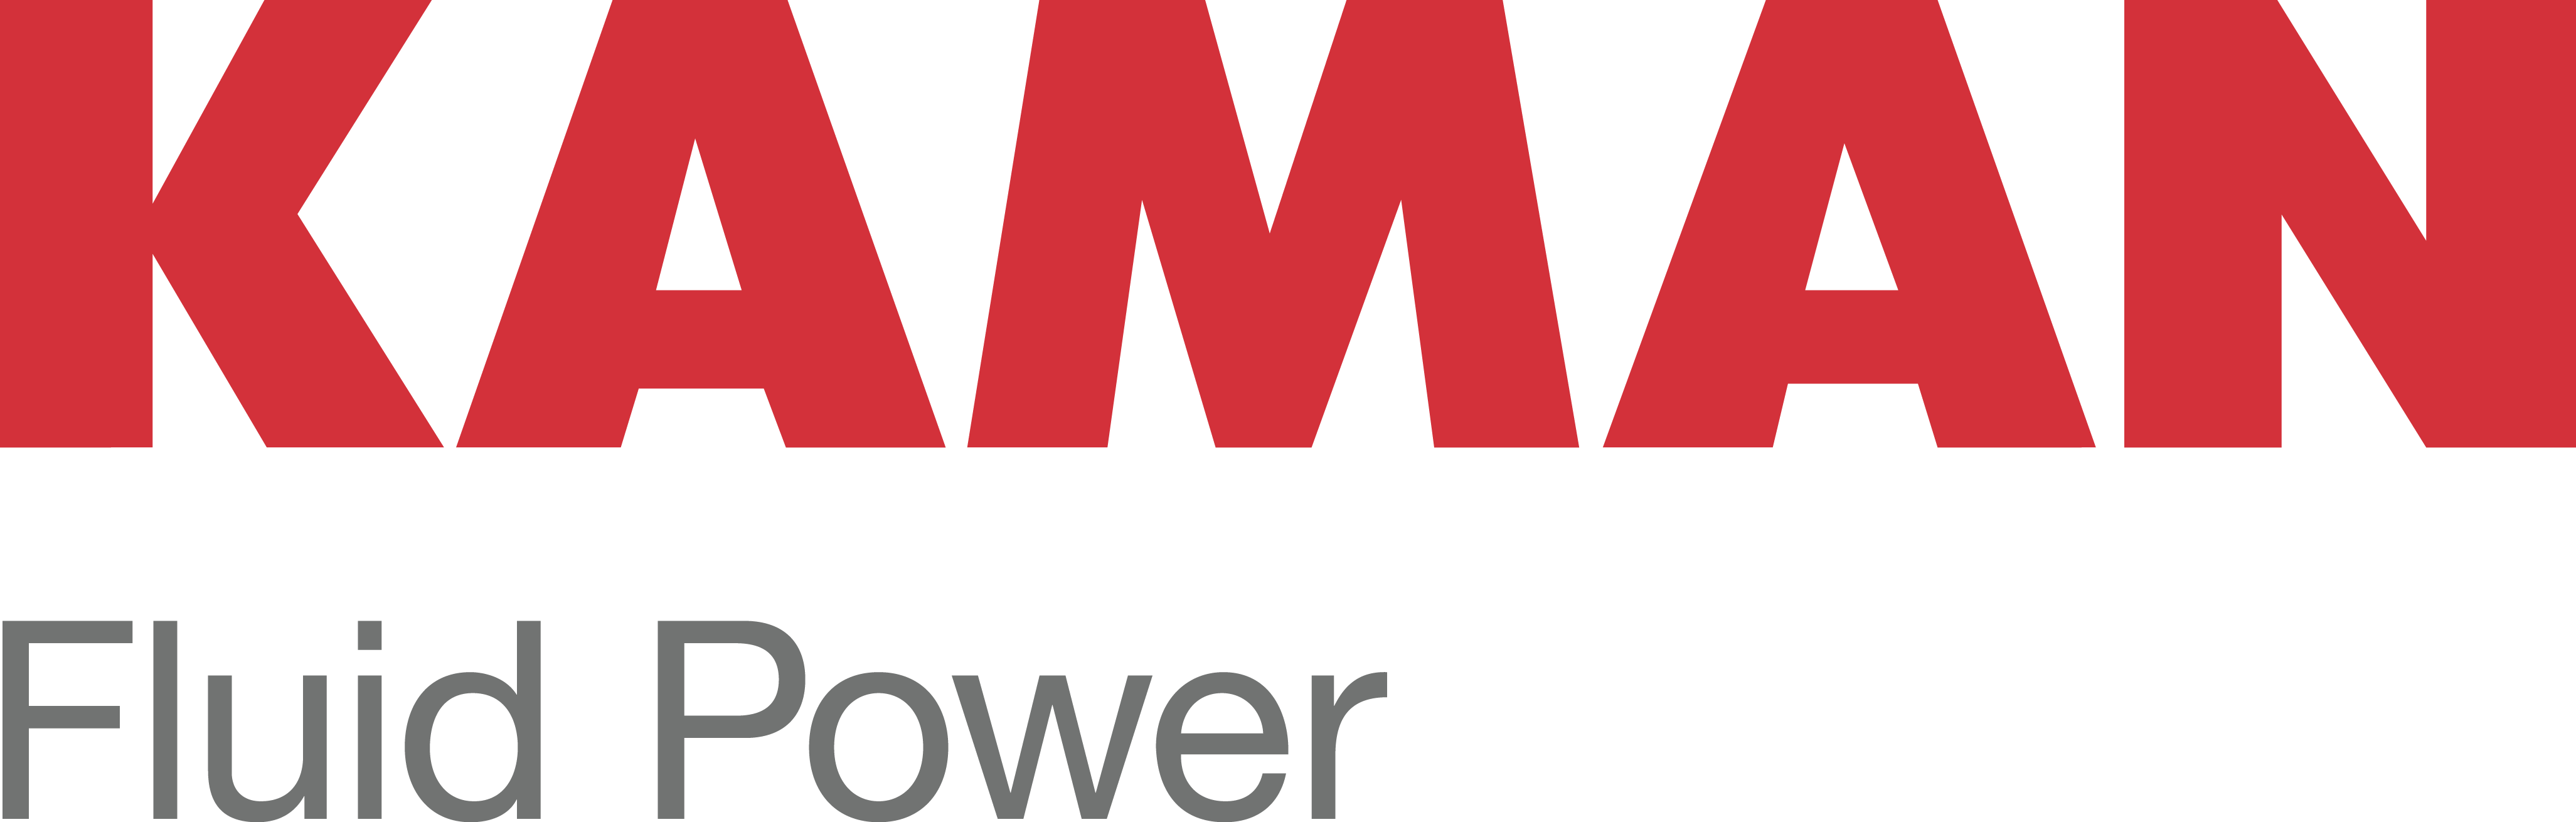 Kaman Fluid Power